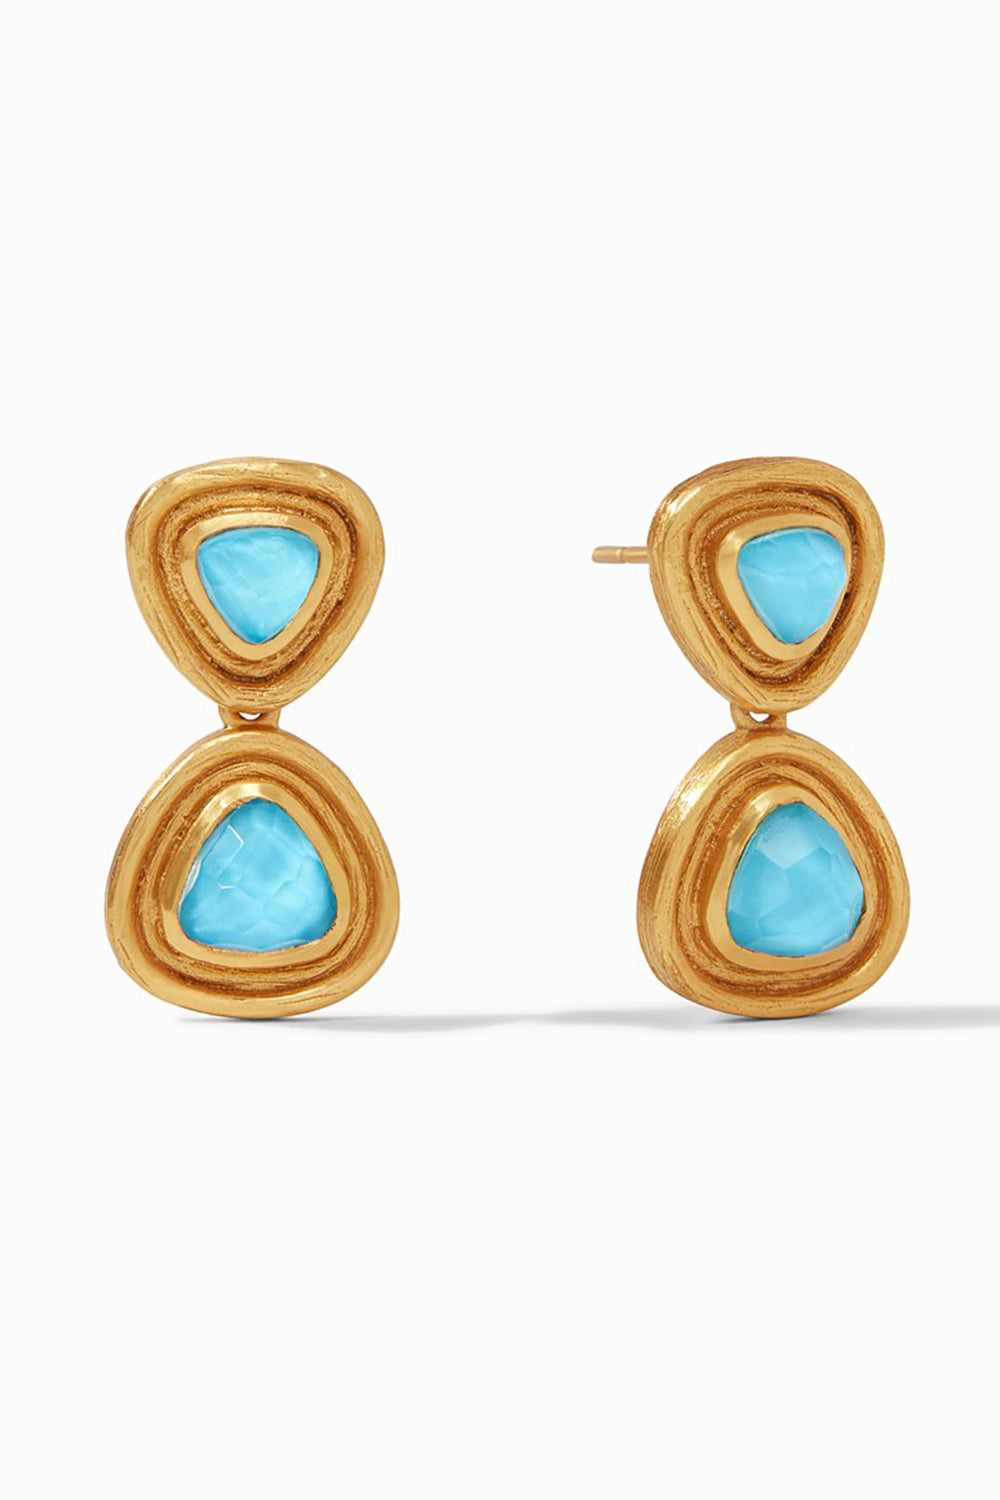 Julie Vos Barcelona Midi Earring - Pacific Blue